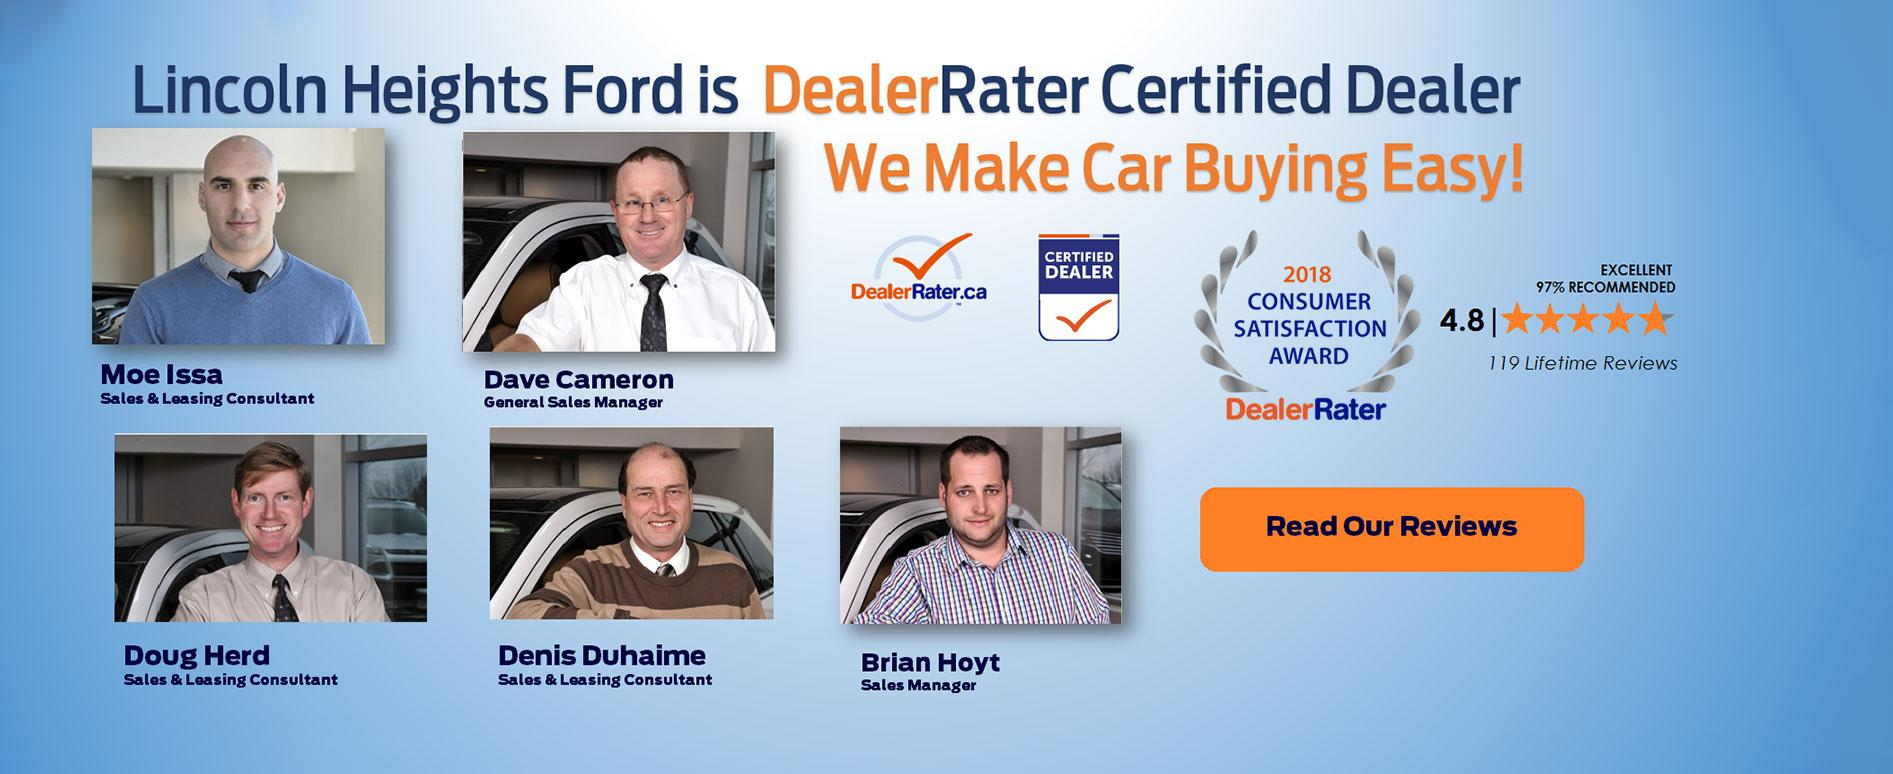 Lincoln Heights Ford Dealer Rater Certified